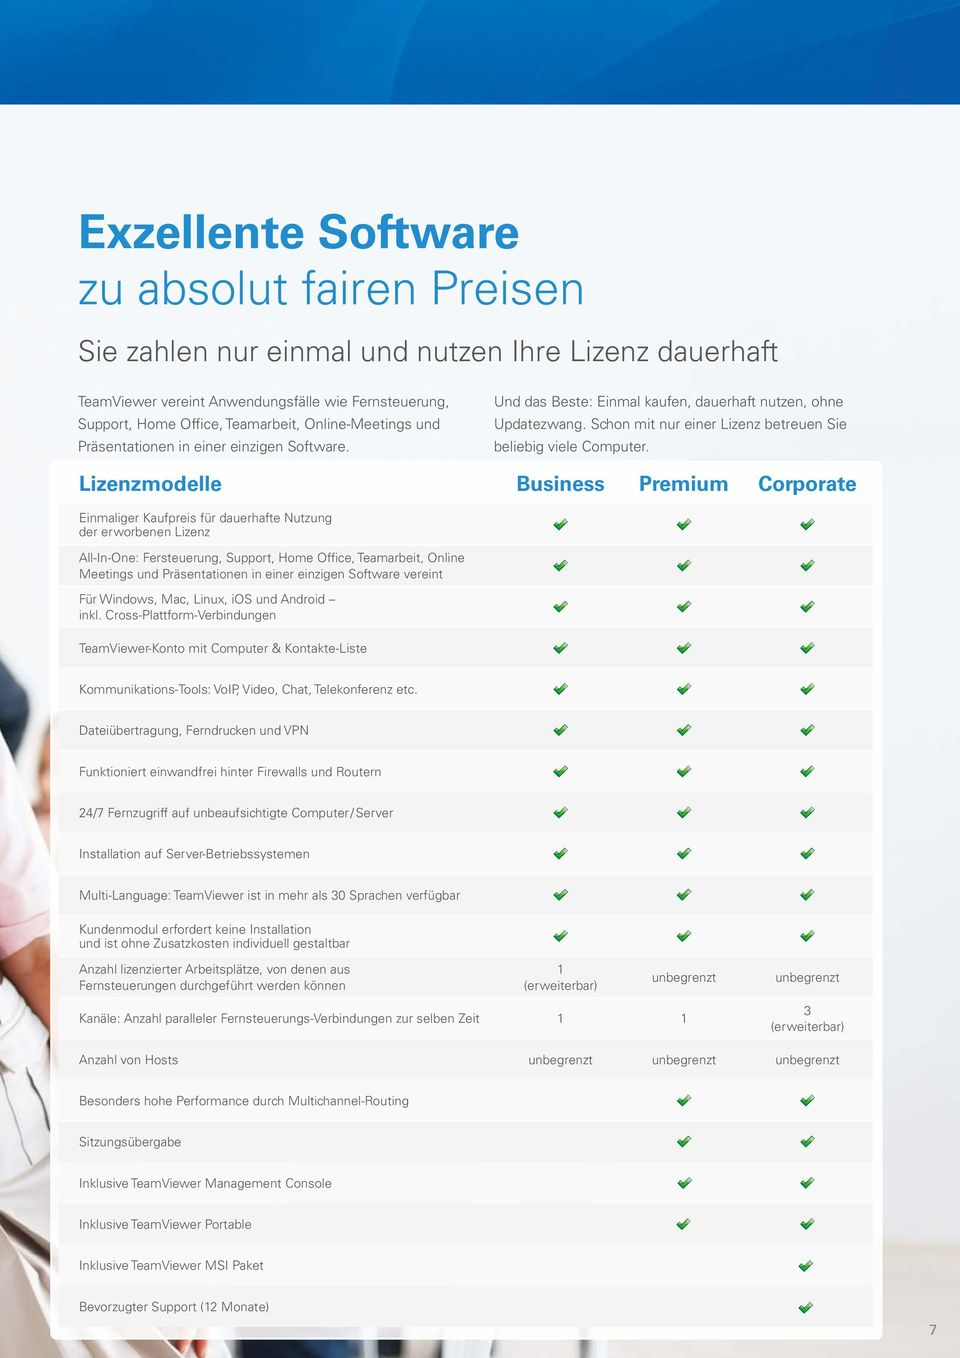 Lizenzmodelle Business Premium Corporate Einmaliger Kaufpreis für dauerhafte Nutzung der erworbenen Lizenz All-In-One: Fersteuerung, Support, Home Office, Teamarbeit, Online Meetings und